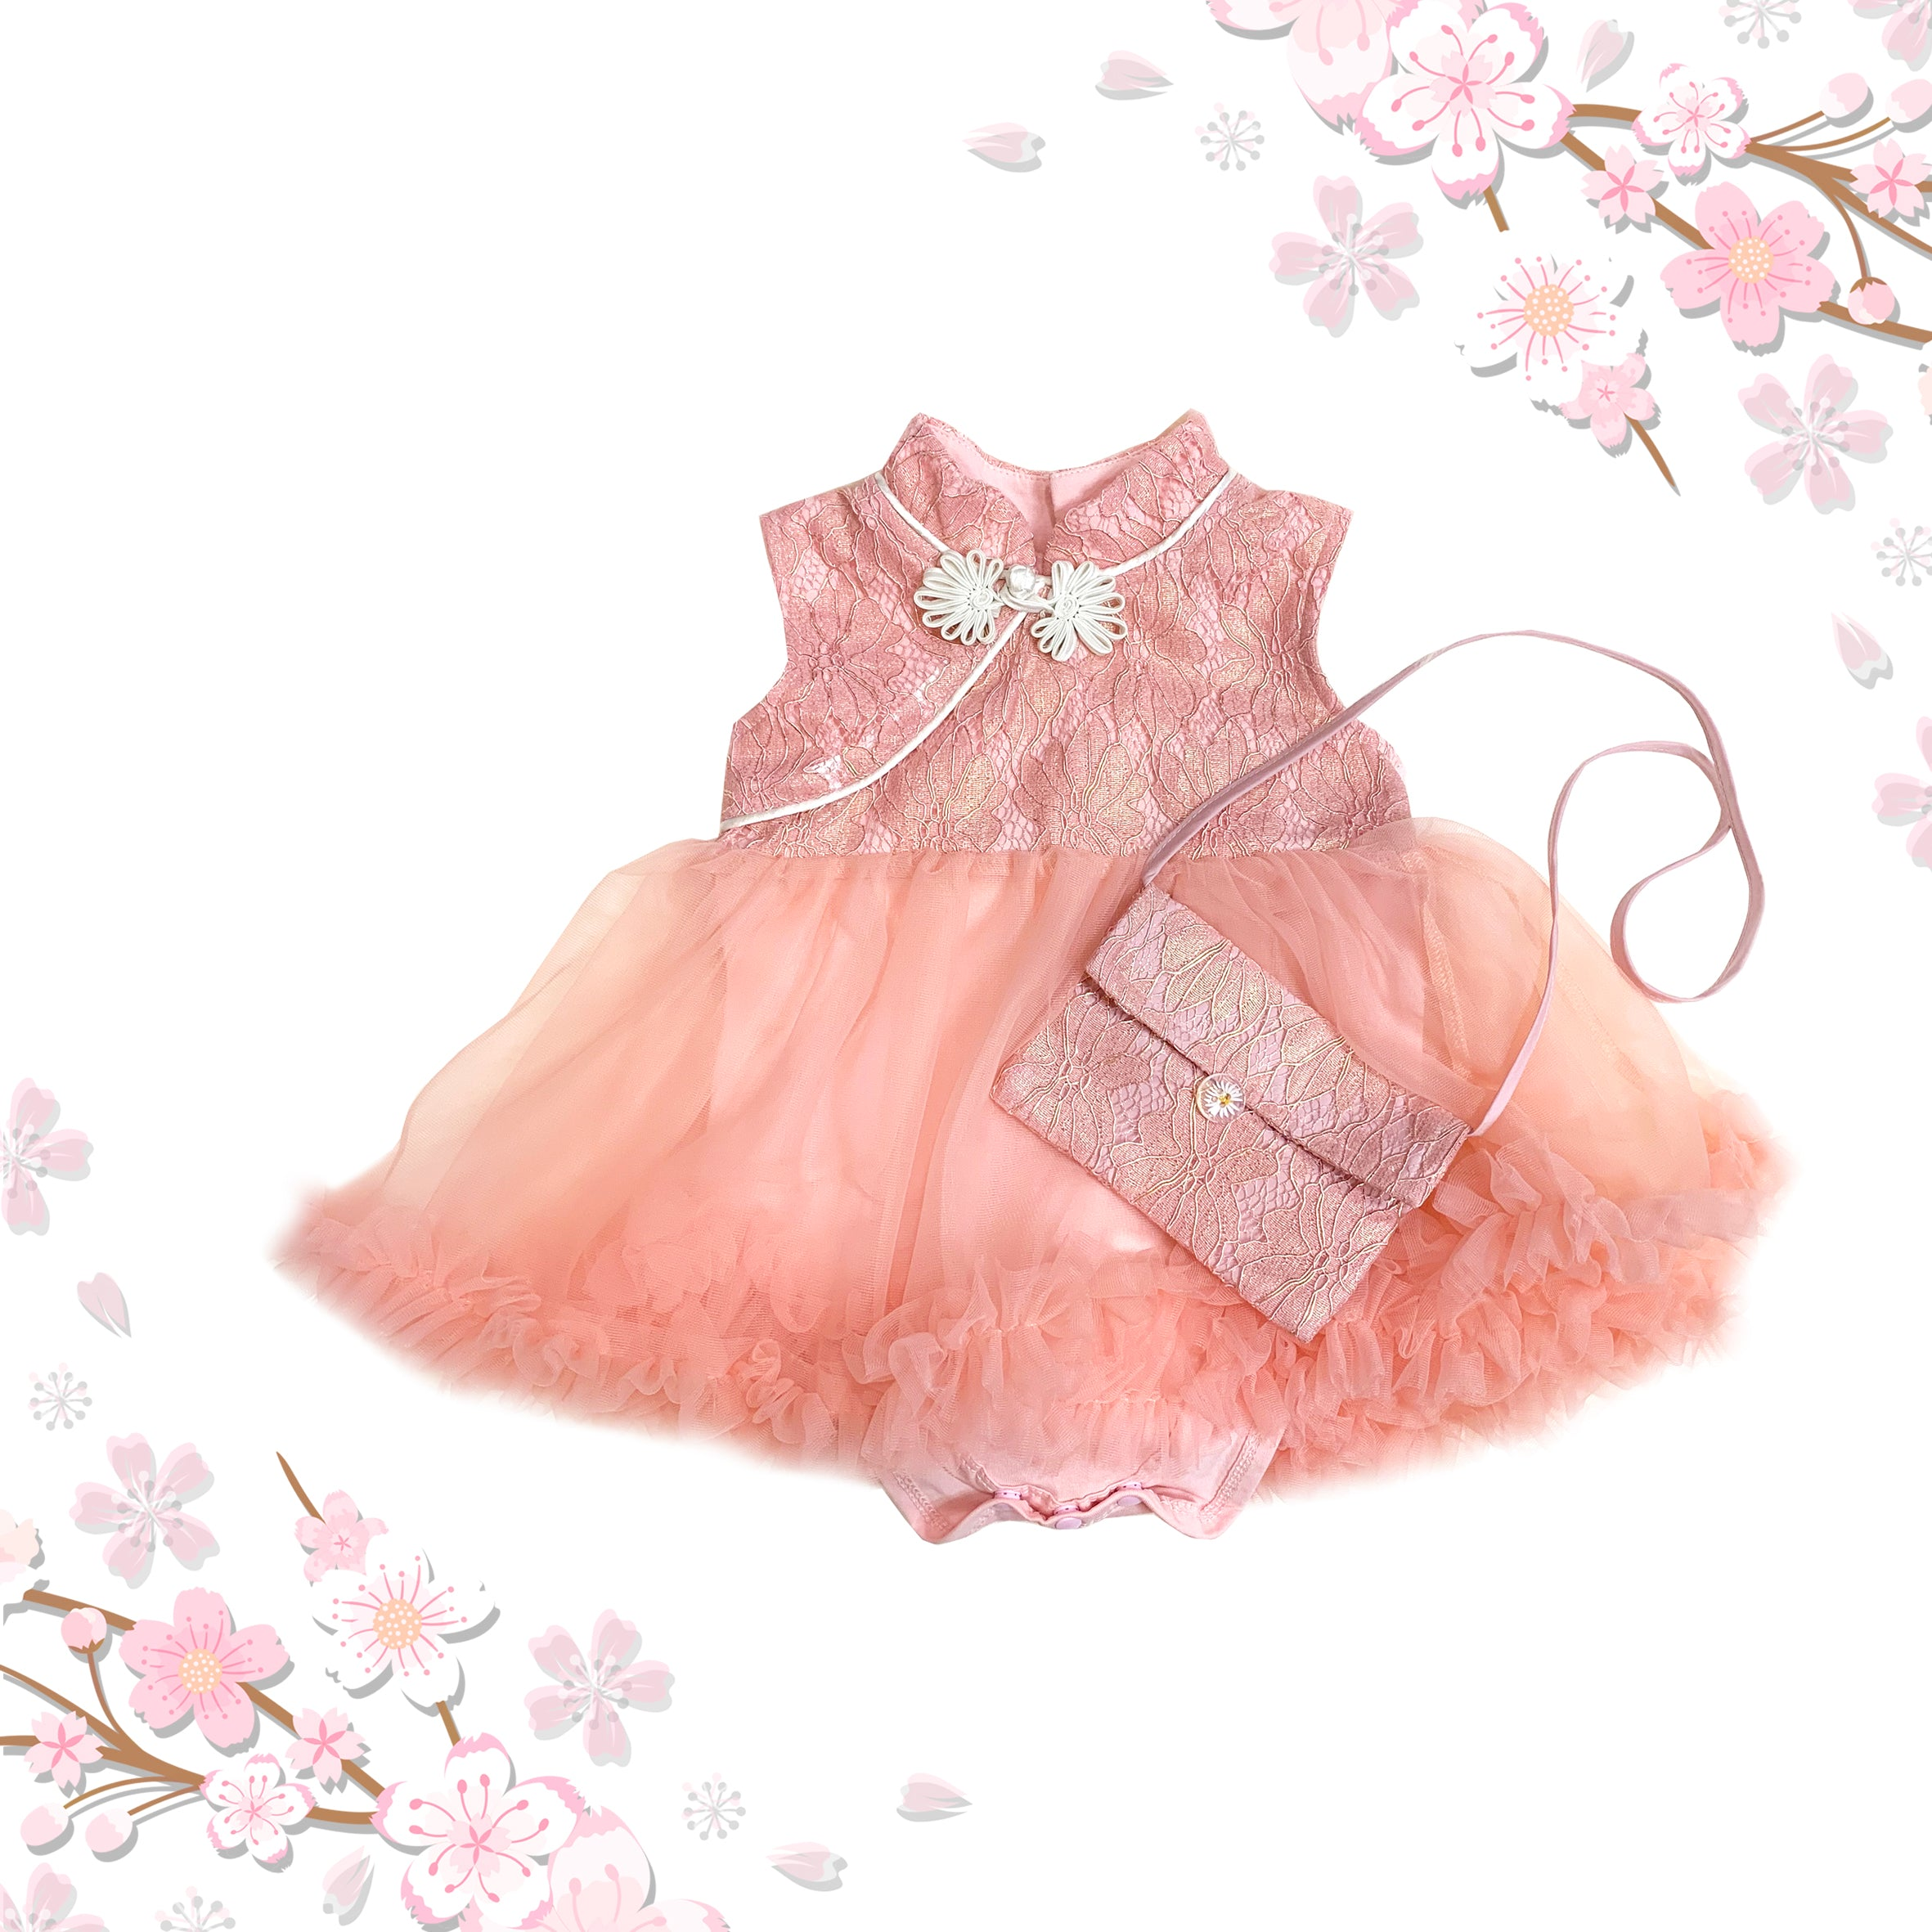 Dusty Rose Pink Cheongsam